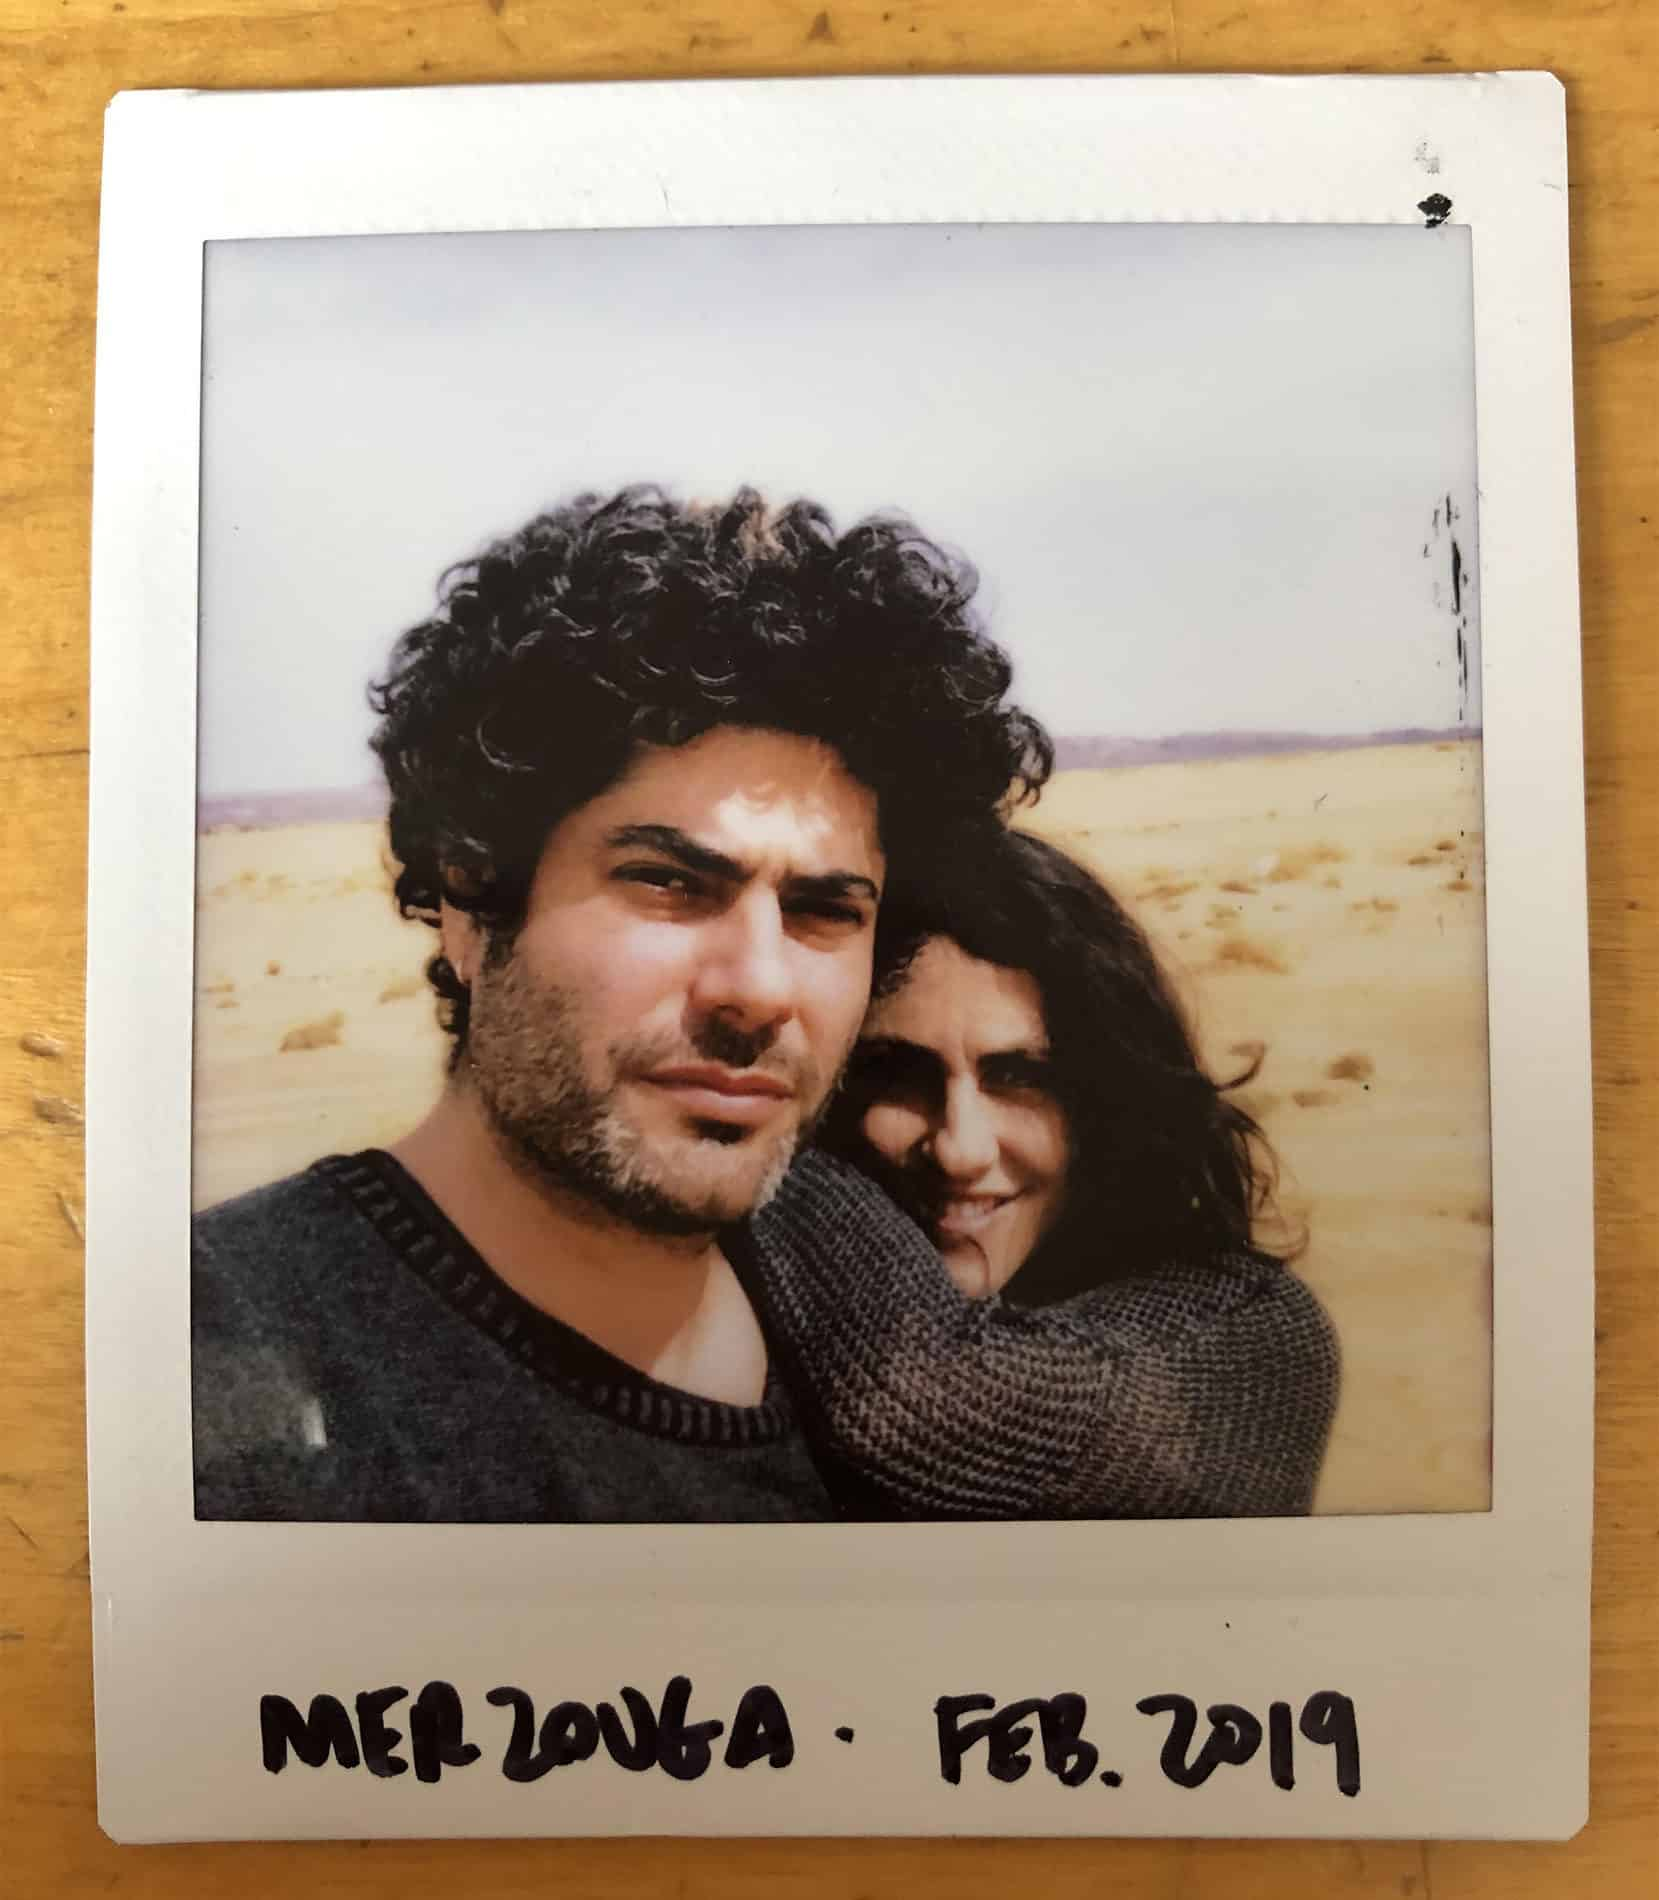 polaroid portrait of a man and his girl